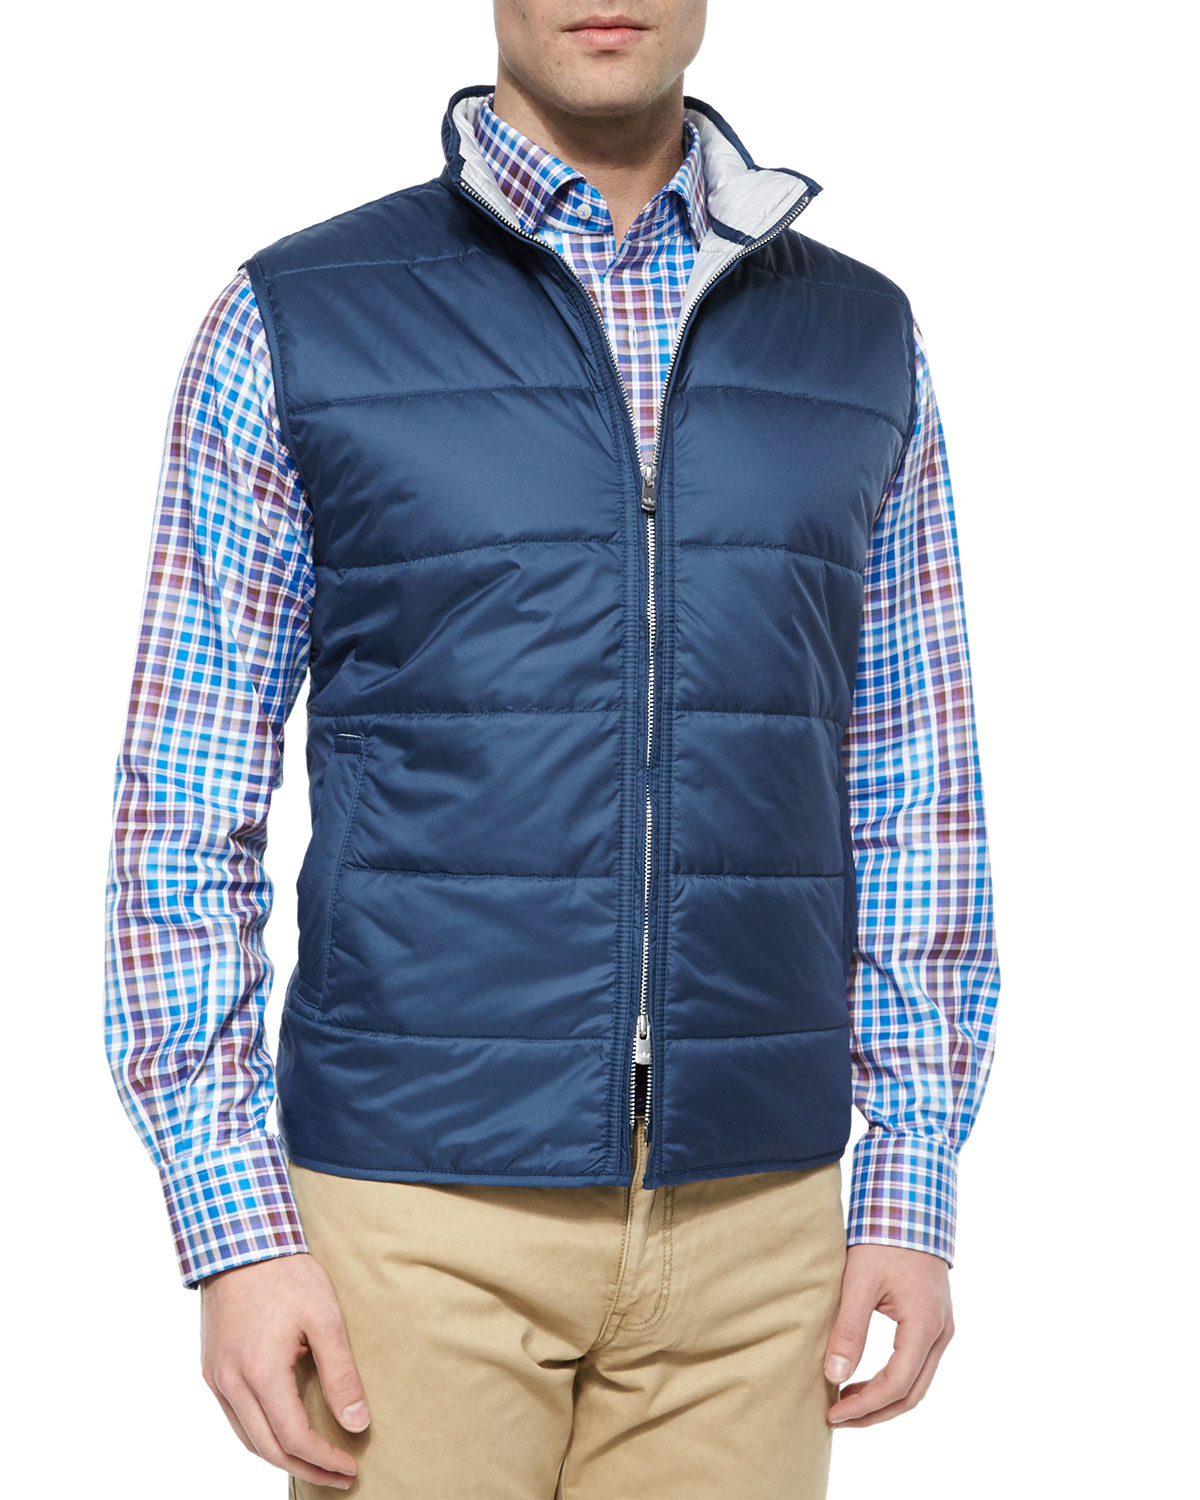 Peter millar Cumberland Quilted Vest in Blue | Lyst : peter millar quilted vest - Adamdwight.com